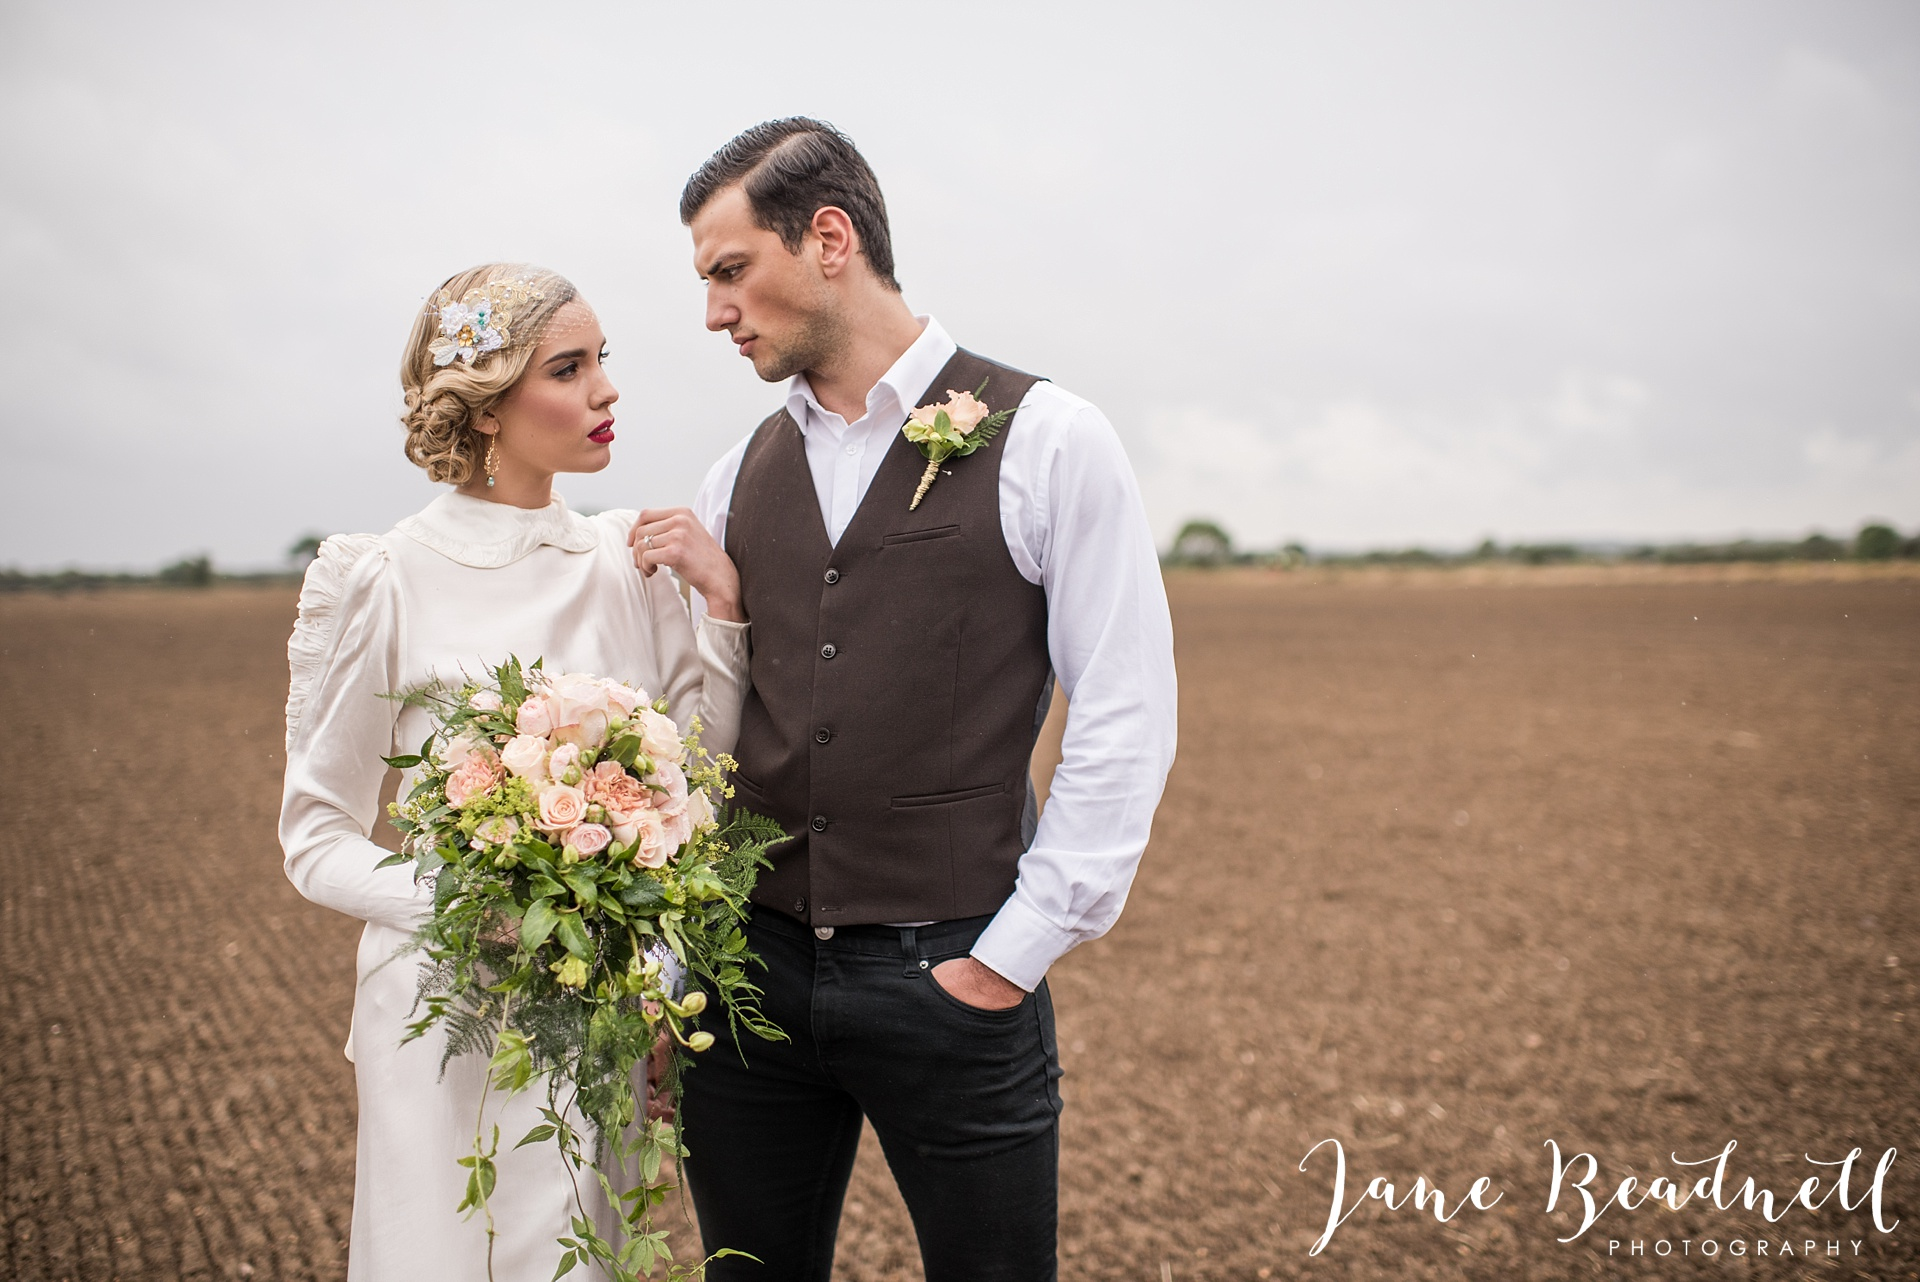 fine-art-wedding-photographer-jane-beadnell-photography-yorkshire-wedding-photographer_0050